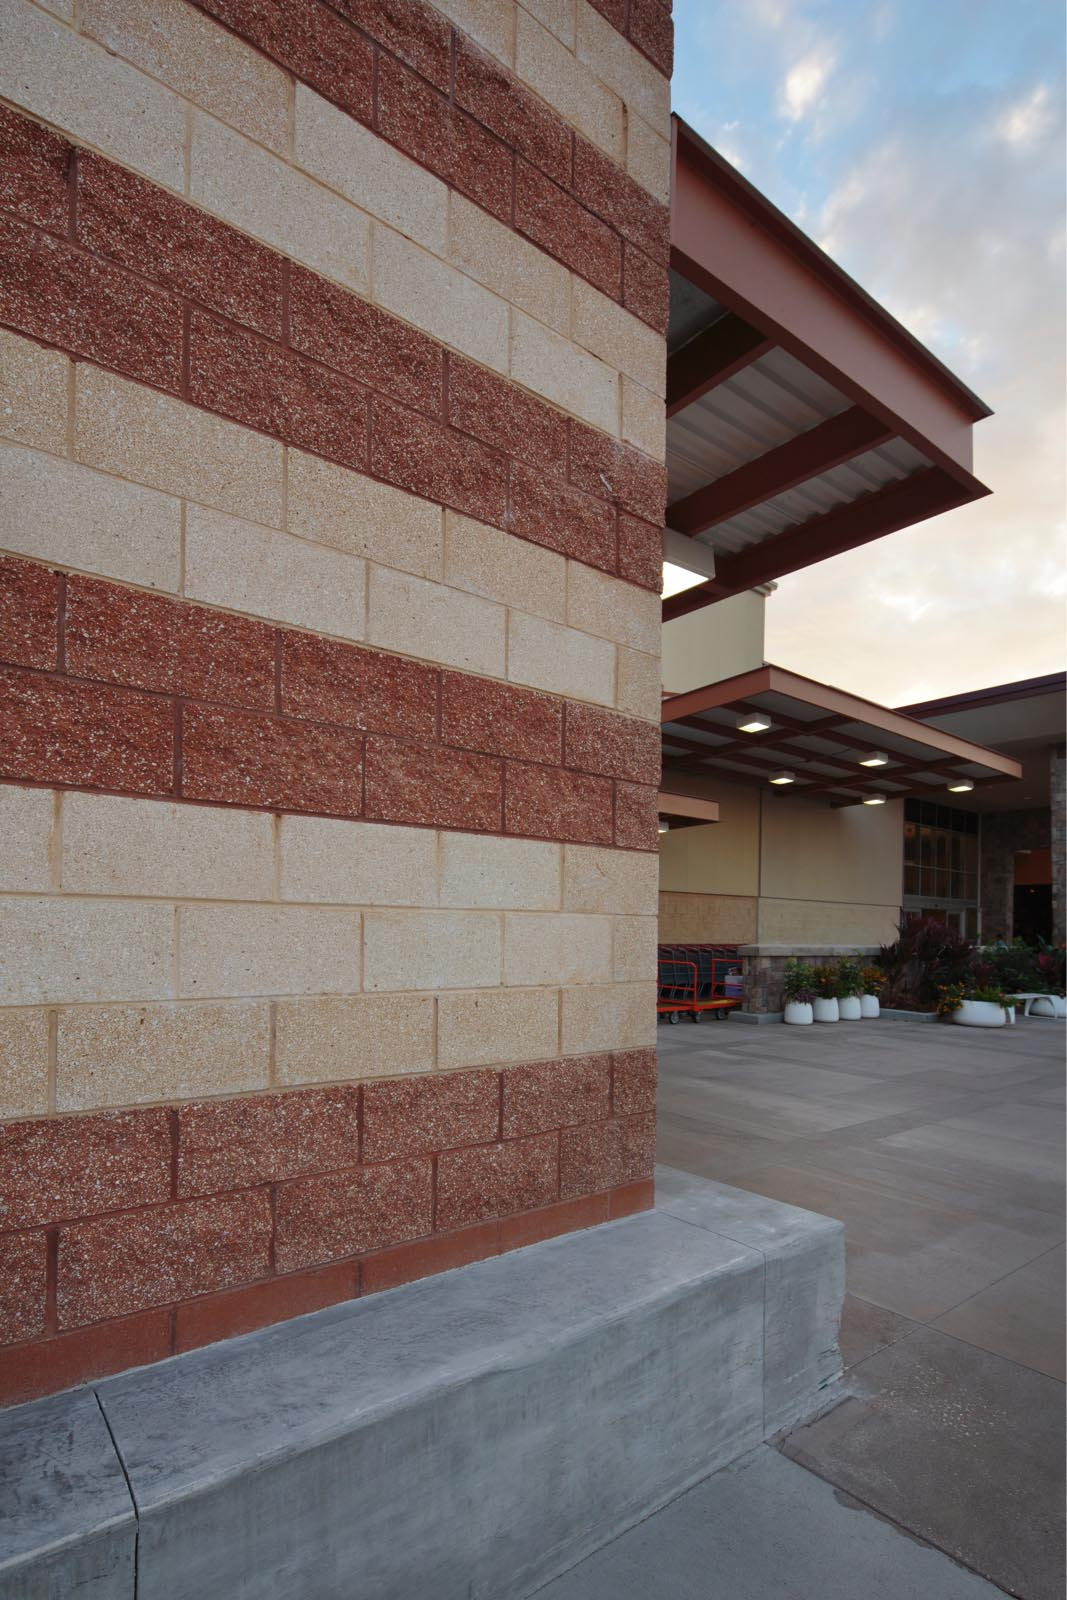 Split Face Blocks Rough Hewn Concrete Masonry Units From